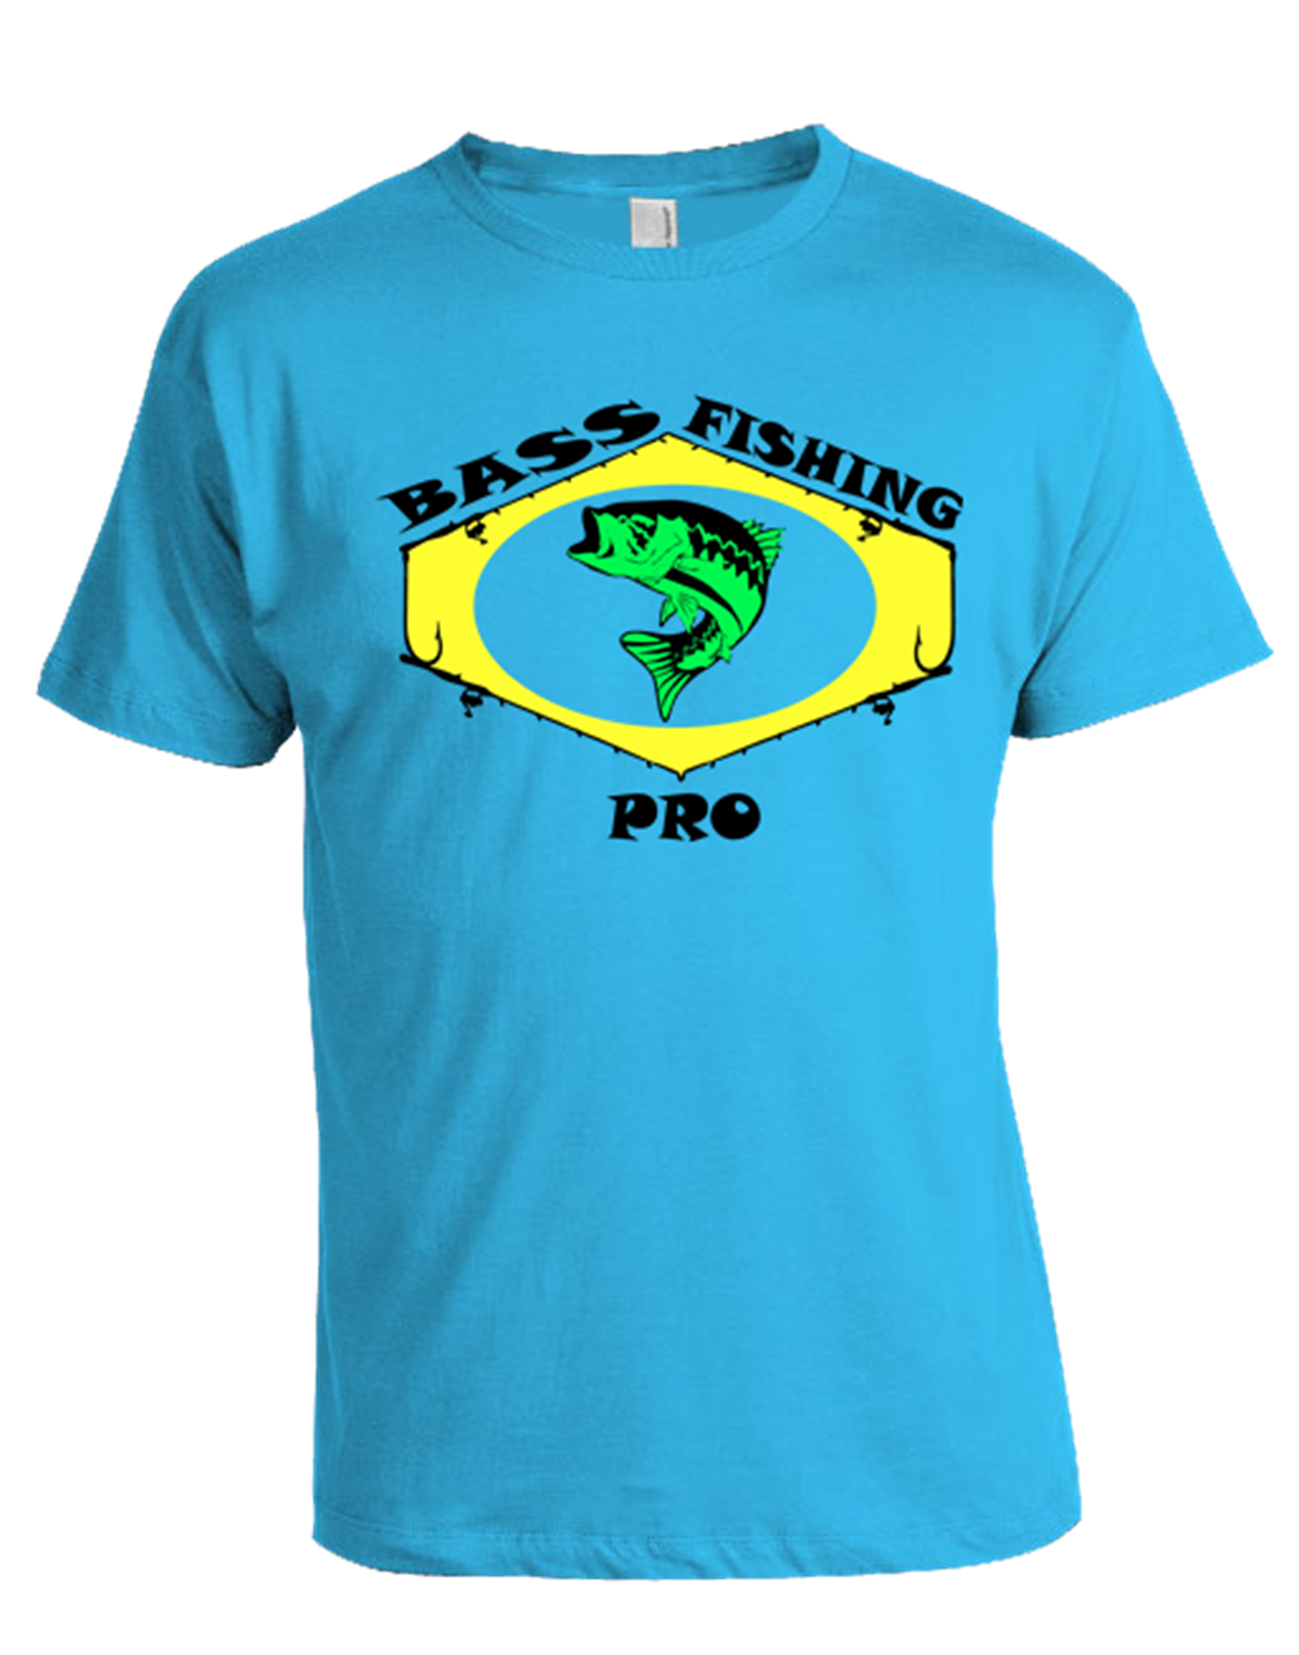 Bass fishing pro t shirt for Bass fishing shirt